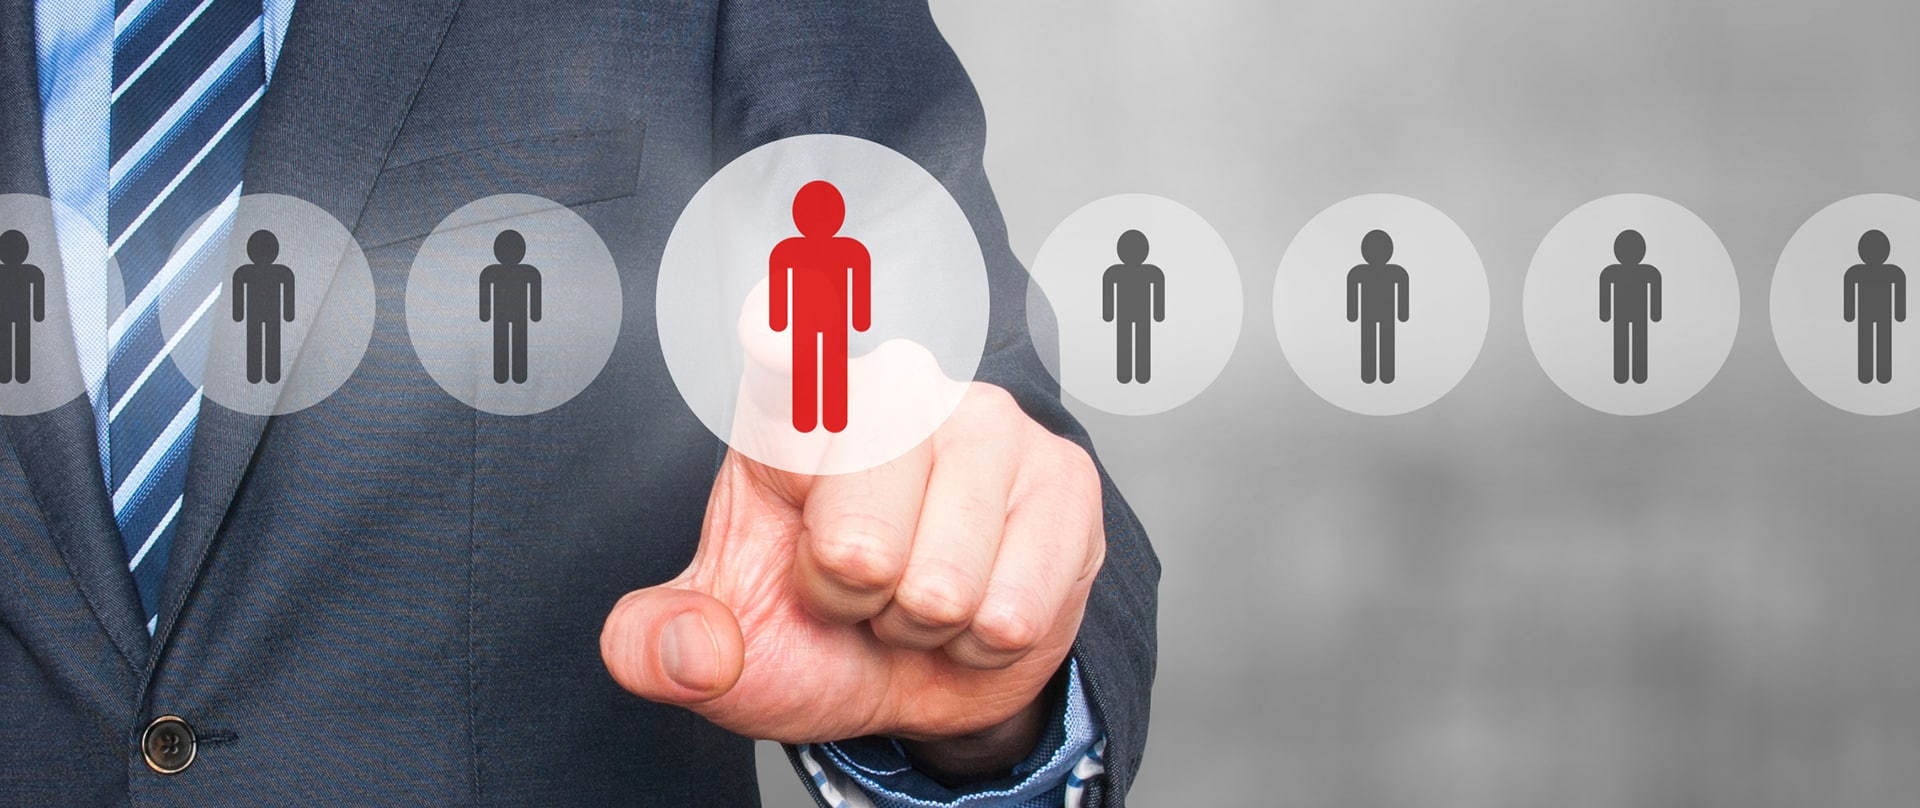 What Personality Trait Do Employers Value Most?